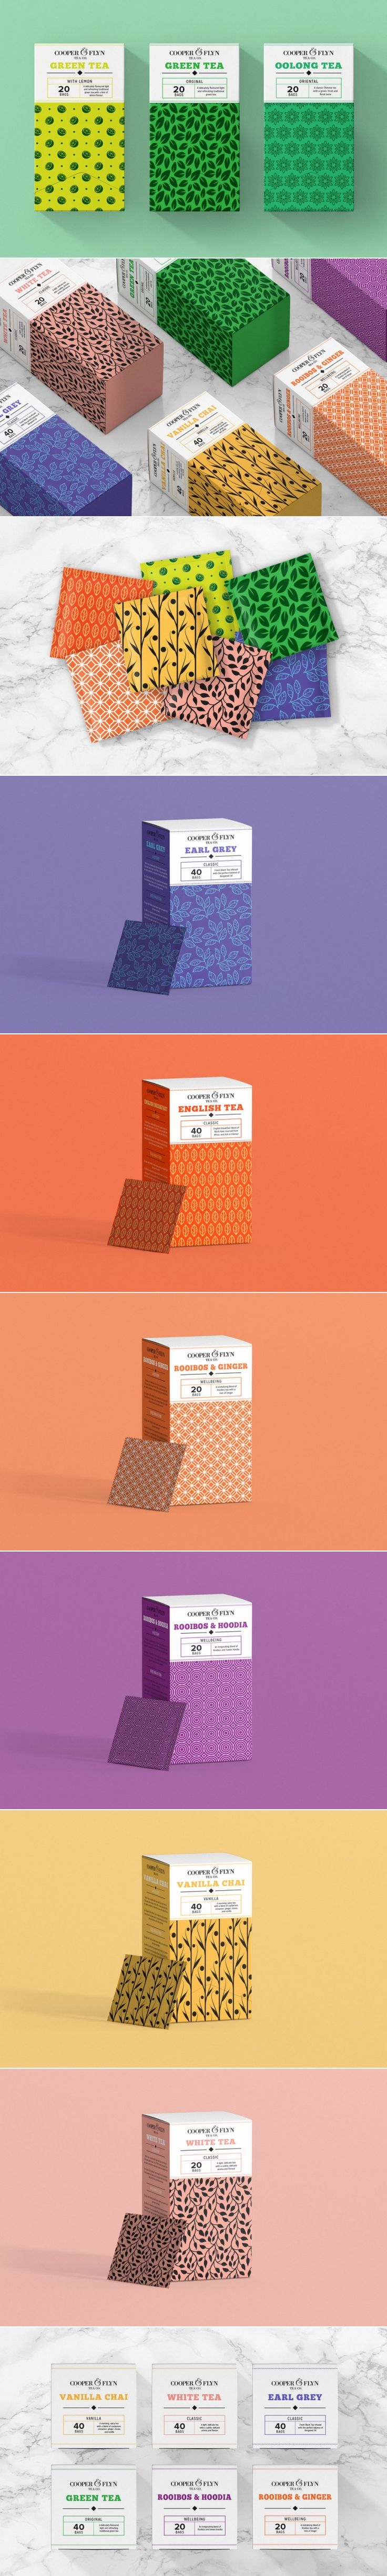 This South African Tea Brand is Bringing On The Awesome Patterns — The Dieline | Packaging & Branding Design & Innovation News